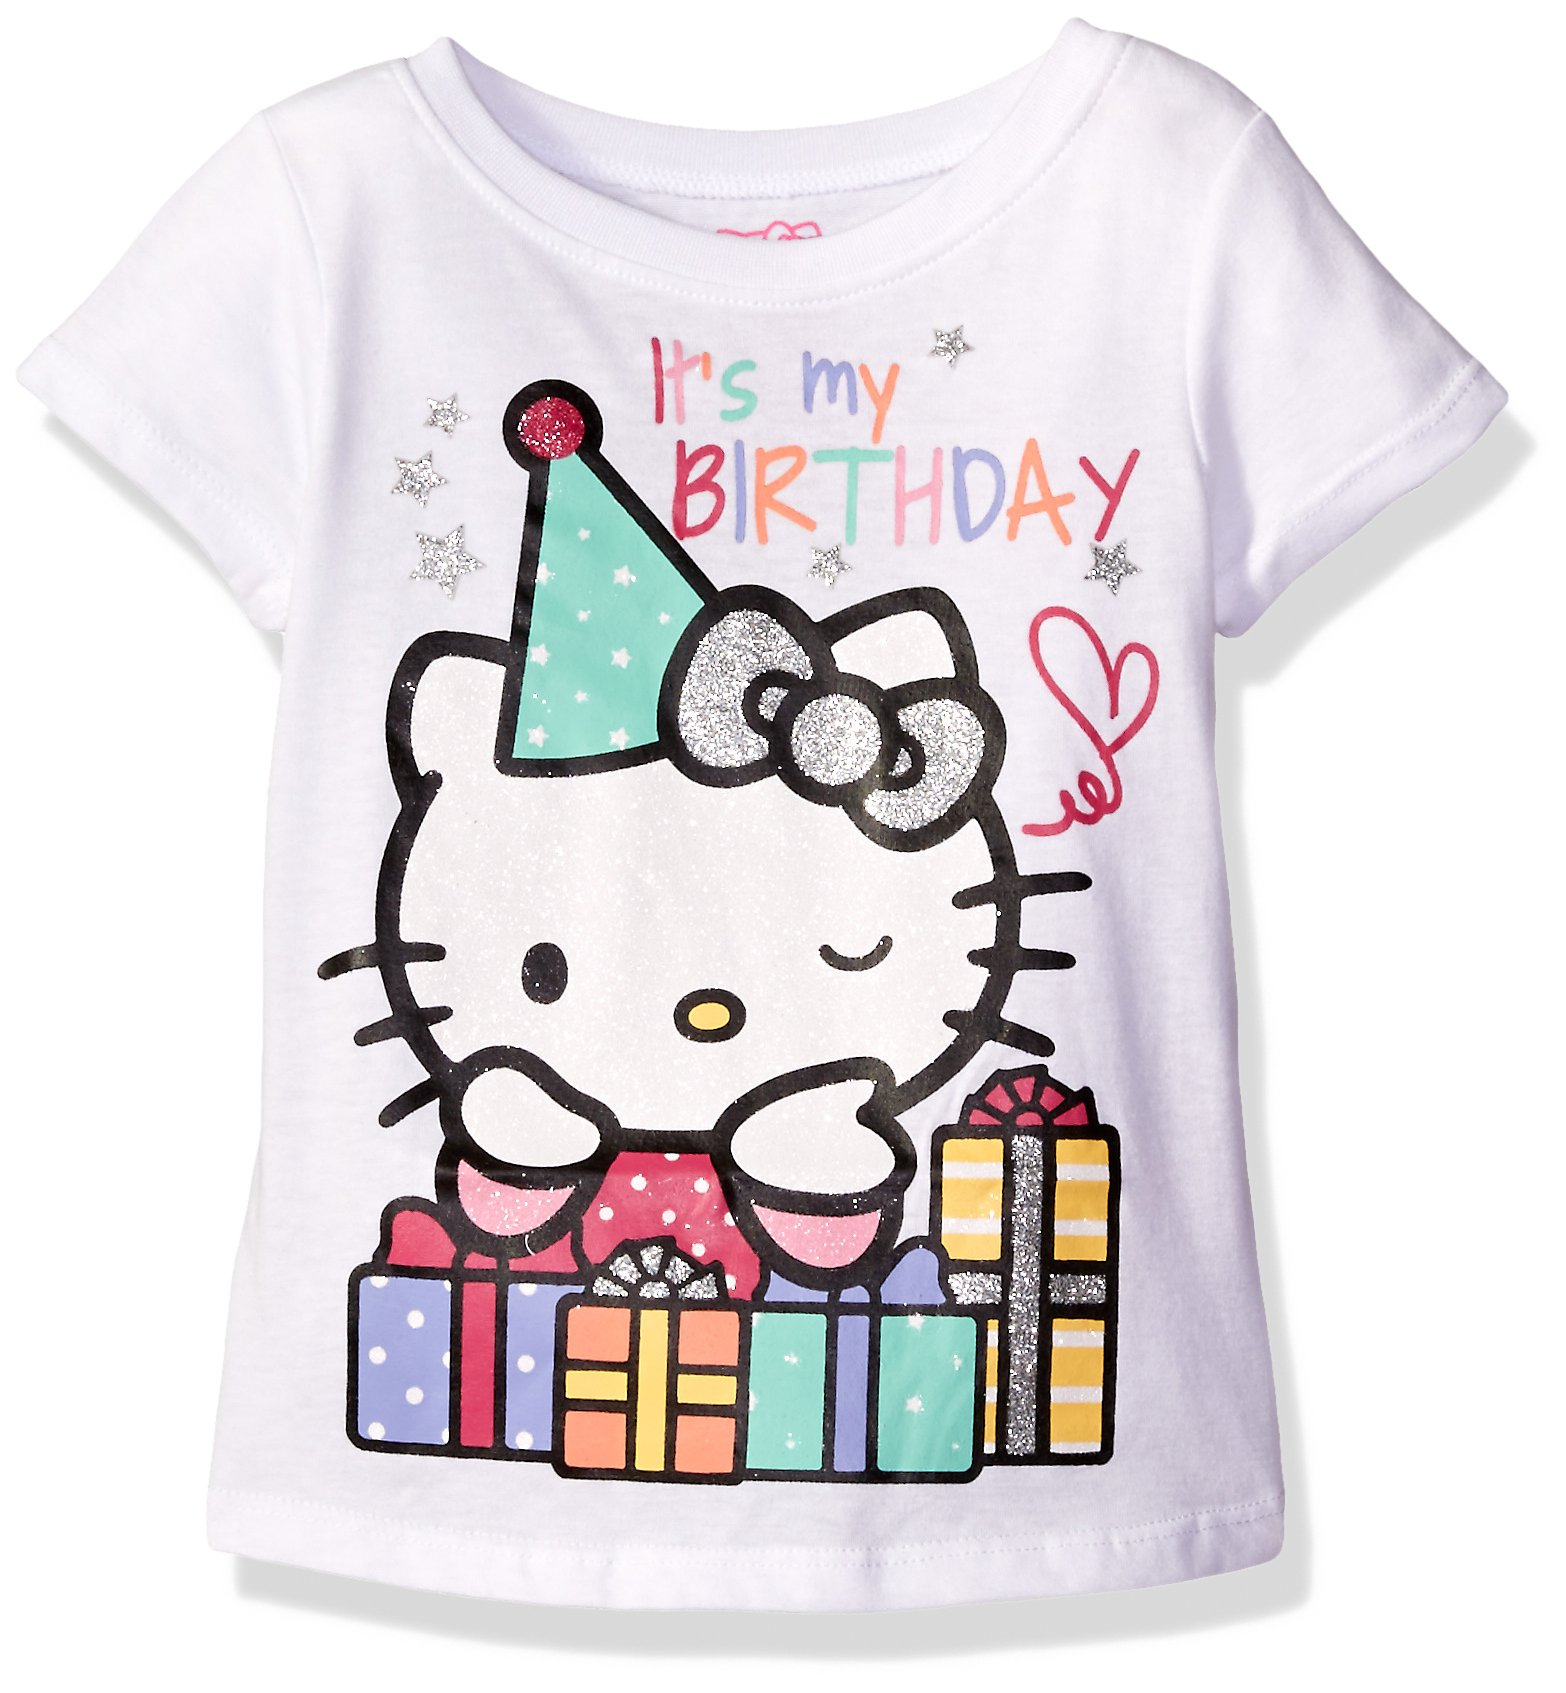 Hello Kitty Little Girls' Toddler Happy Birthday T-Shirt, Bright White, 4T by Hello Kitty